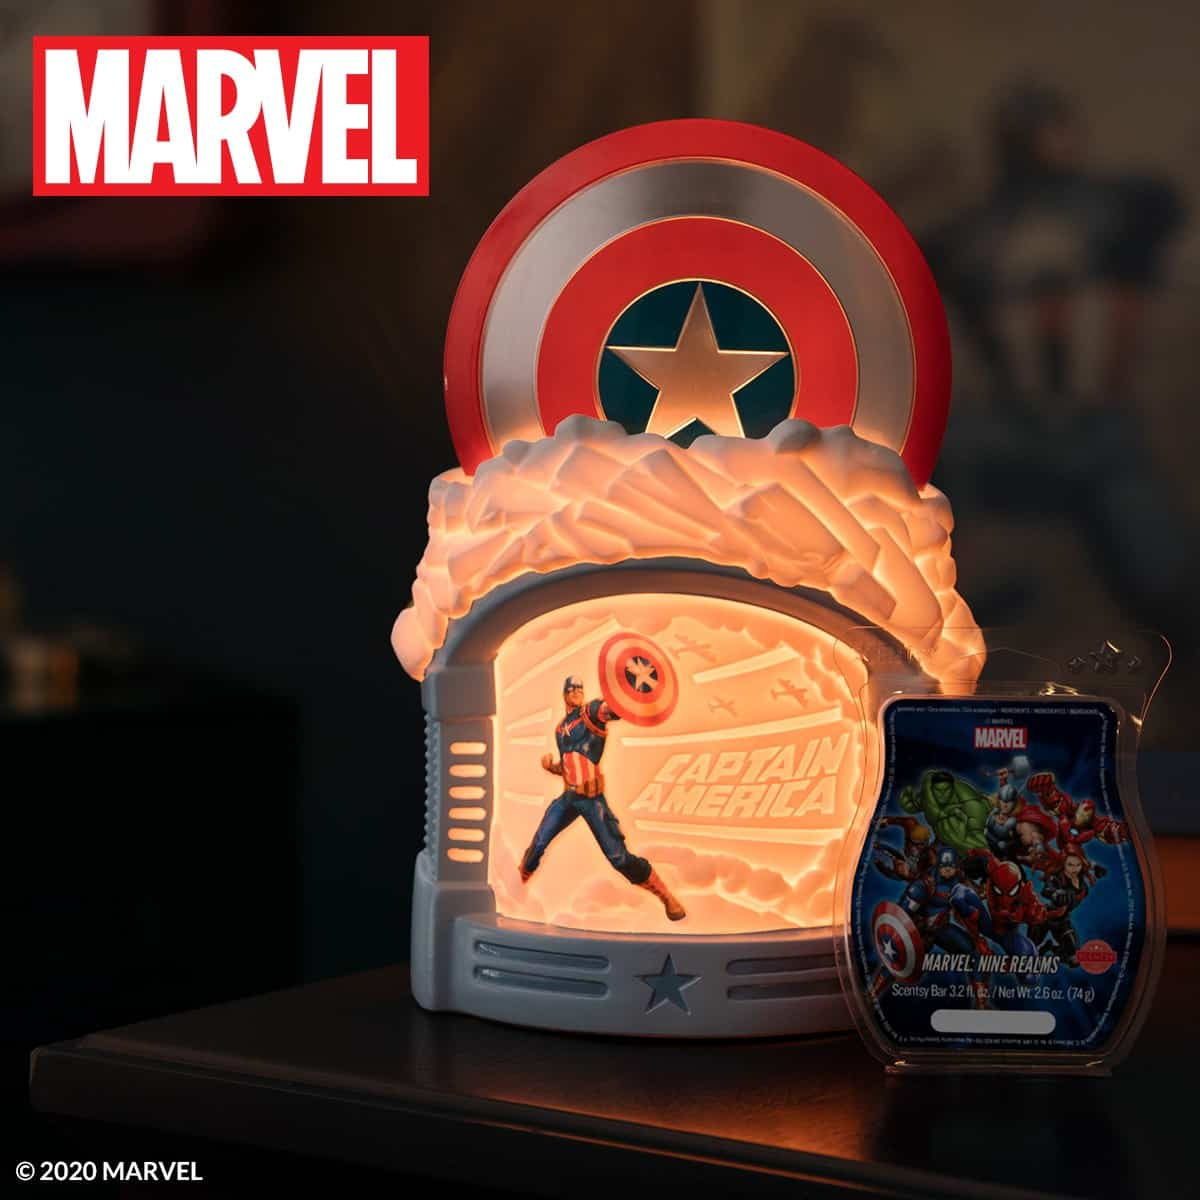 MARVEL: SPIDER-MAN SCENTSY WALL DIFFUSER | CAPTAIN AMERICA, THOR, IRON MAN SCENTSY WARMERS | SPRING 2021